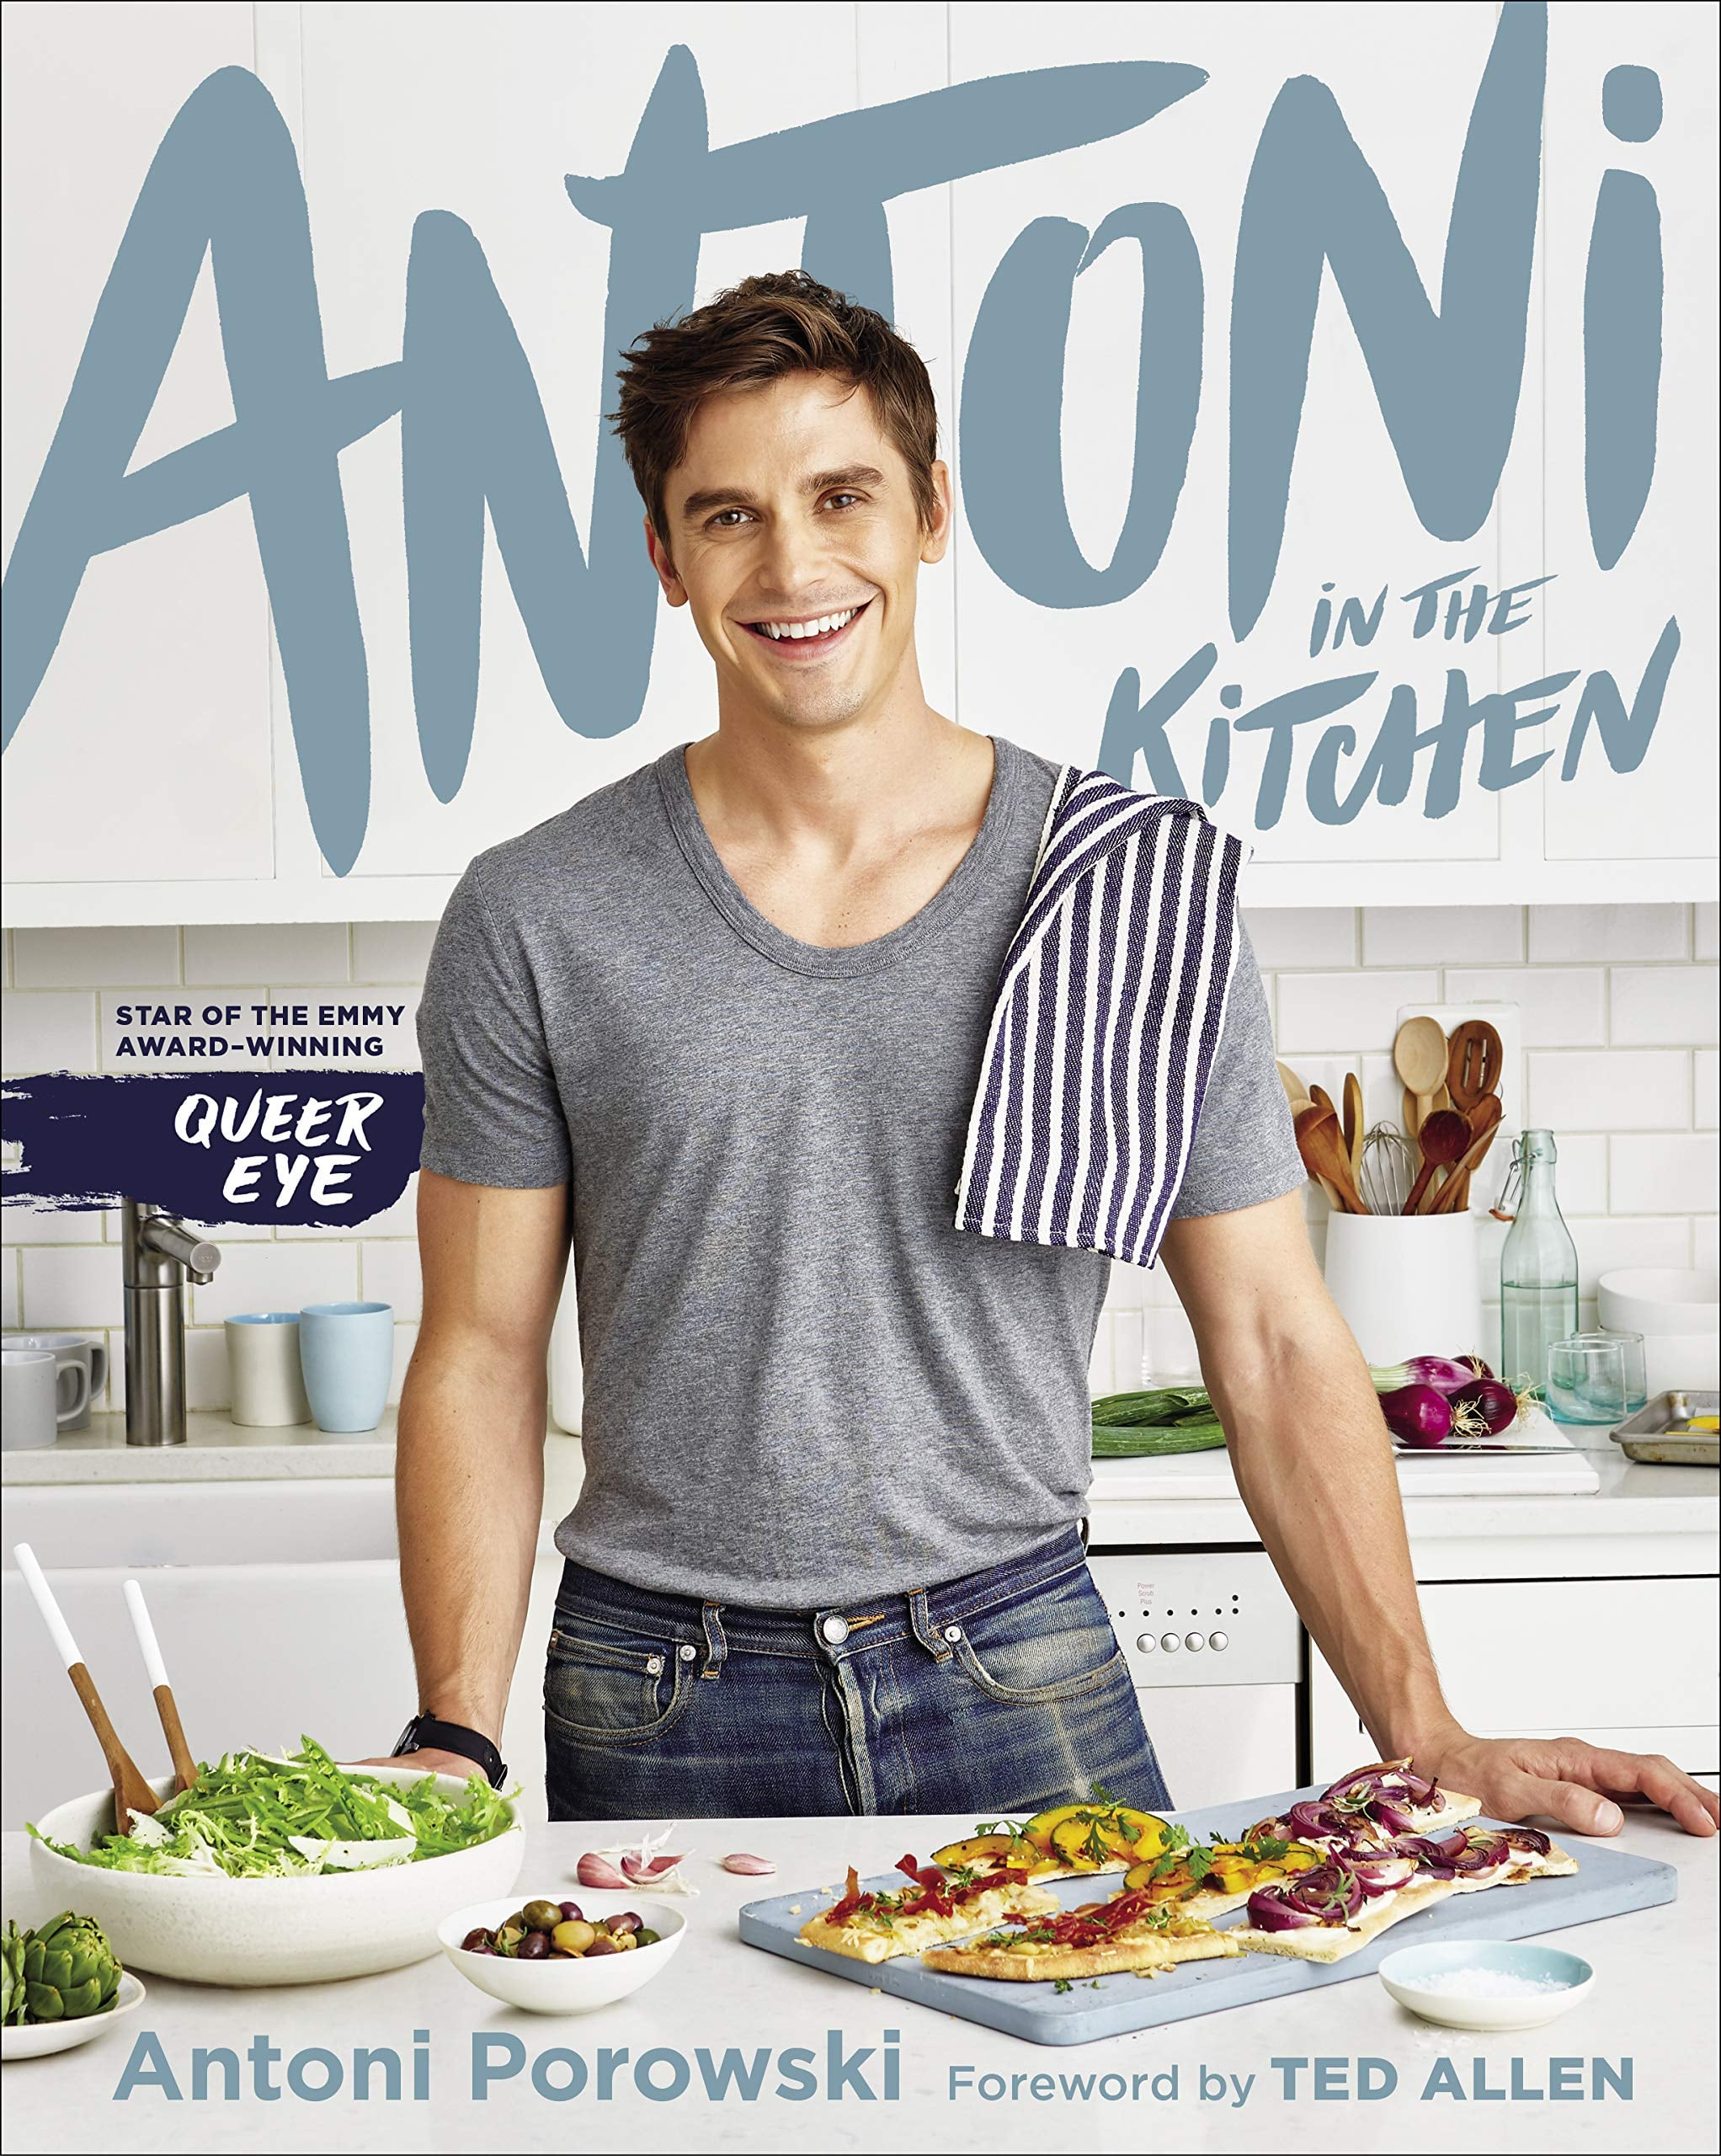 Can You Believe? Queer Eye's Antoni Porowski Is Releasing His First Cookbook!